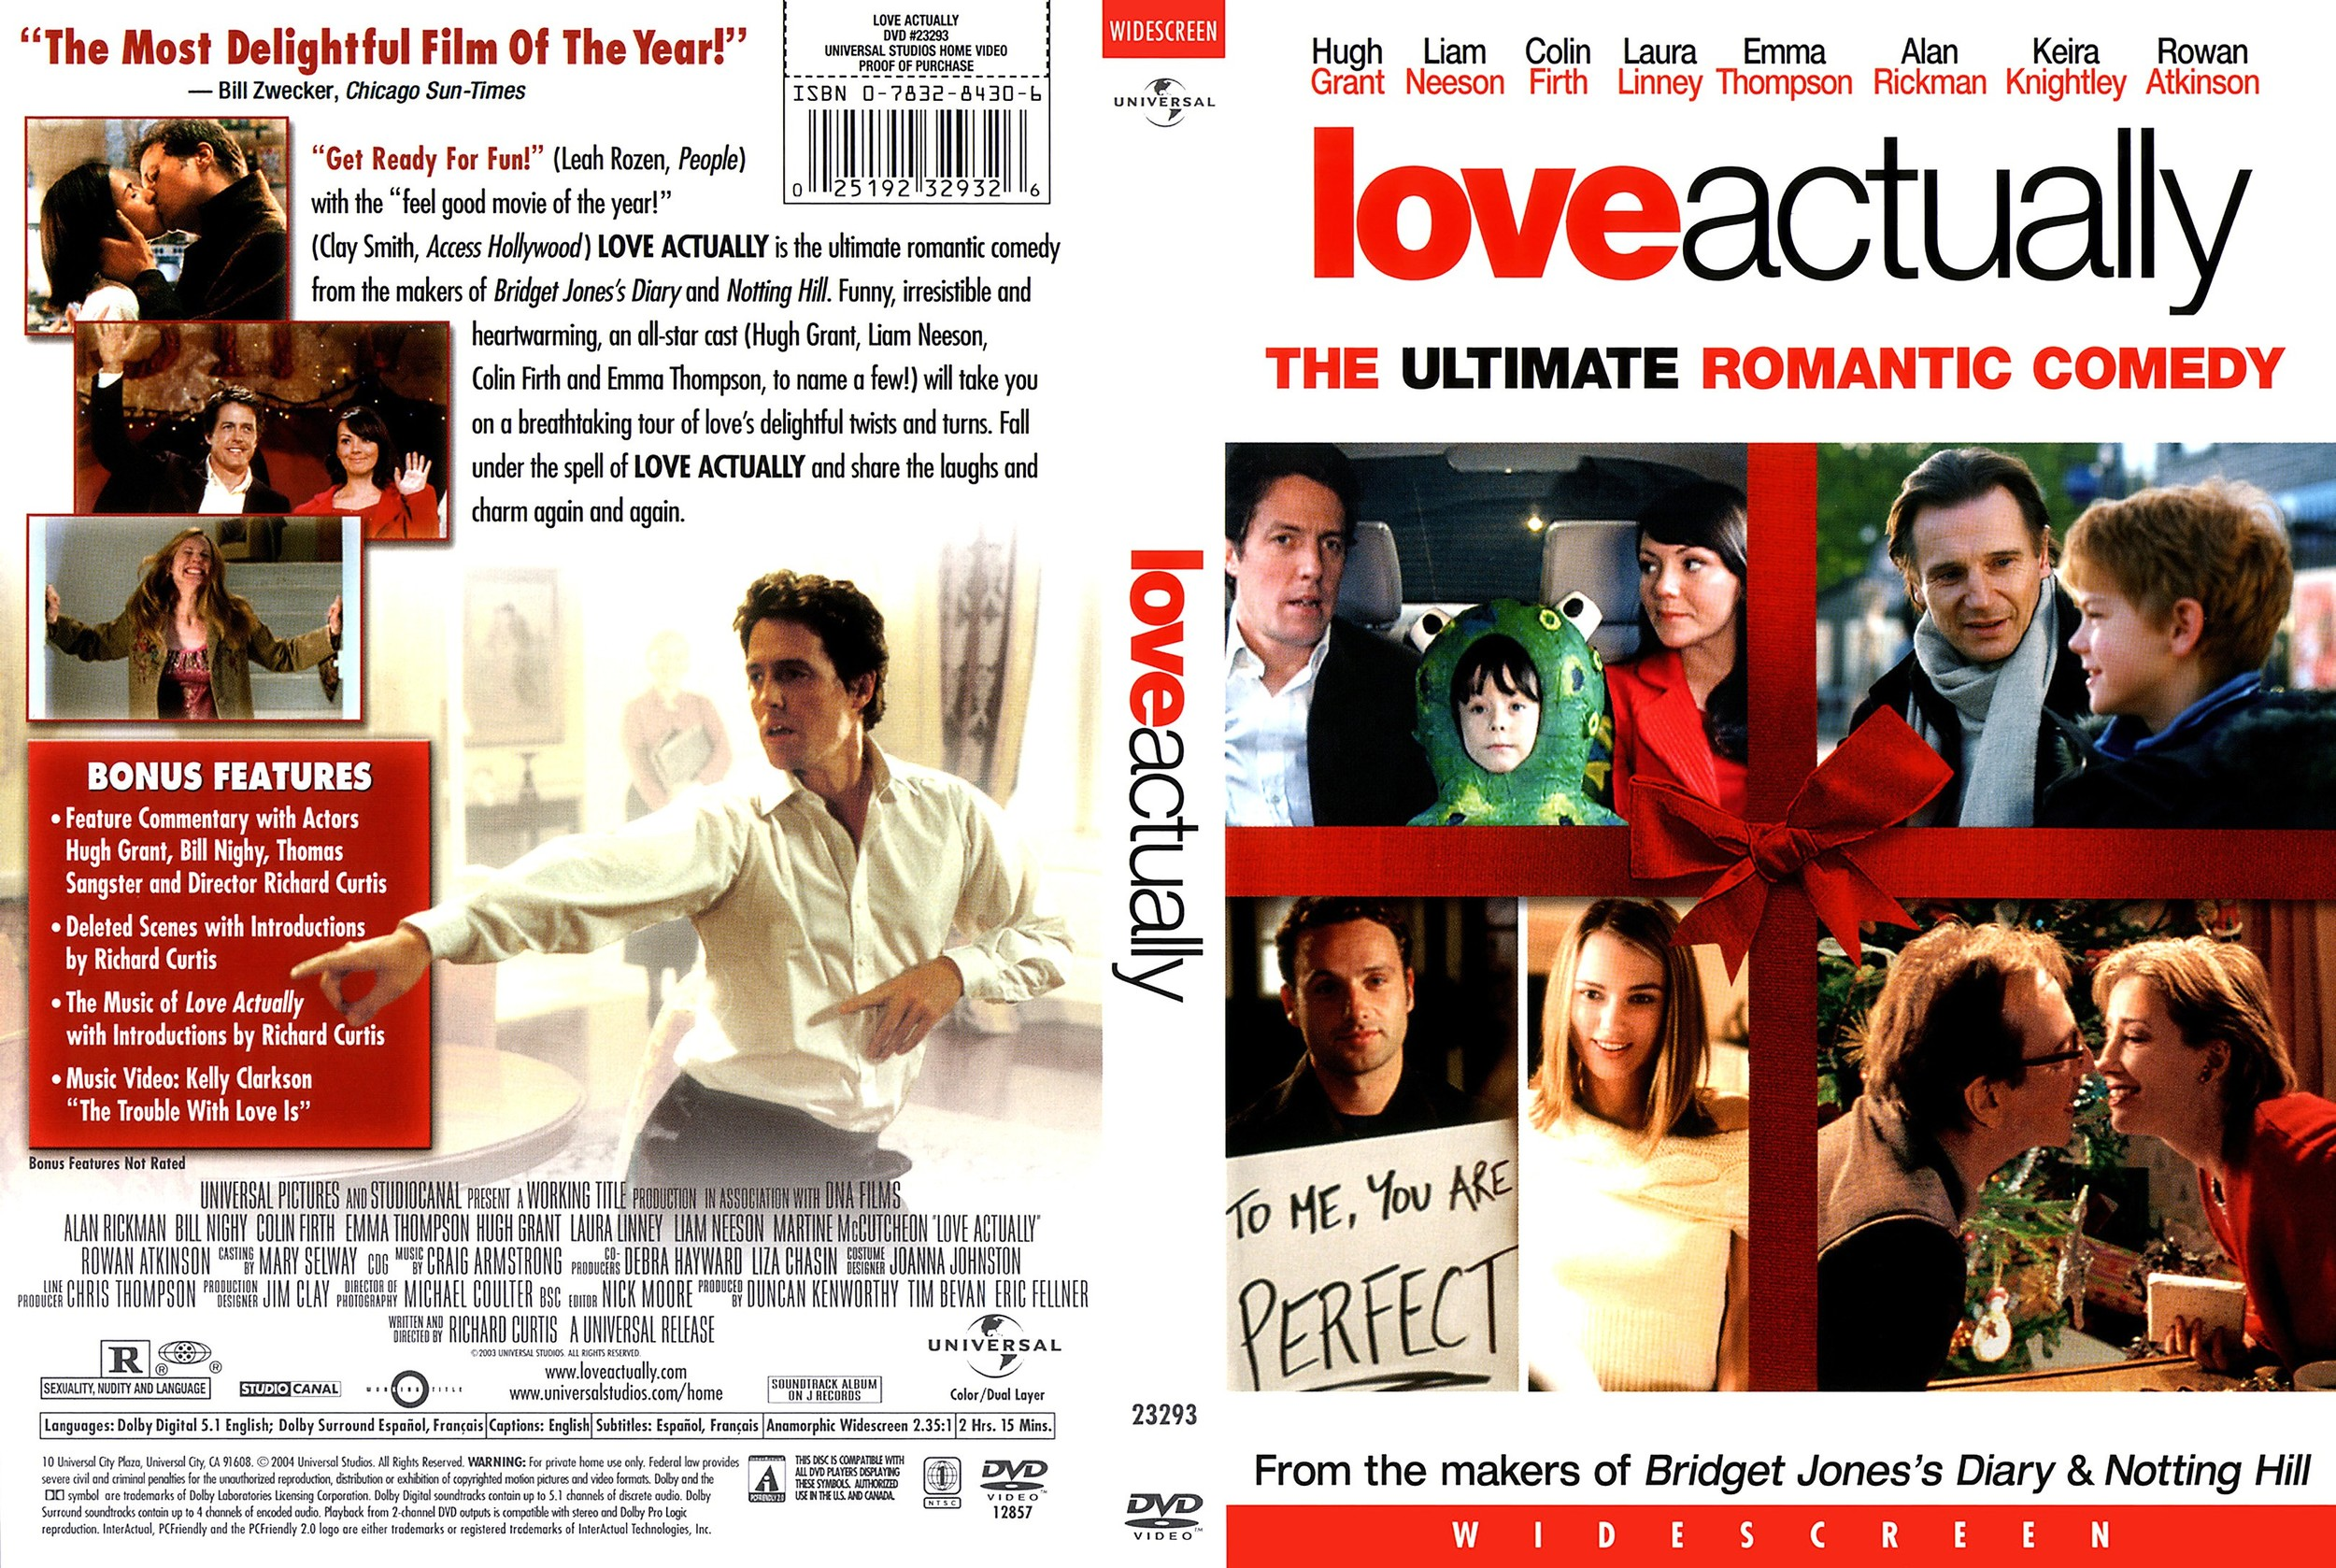 loveactually.jpeg